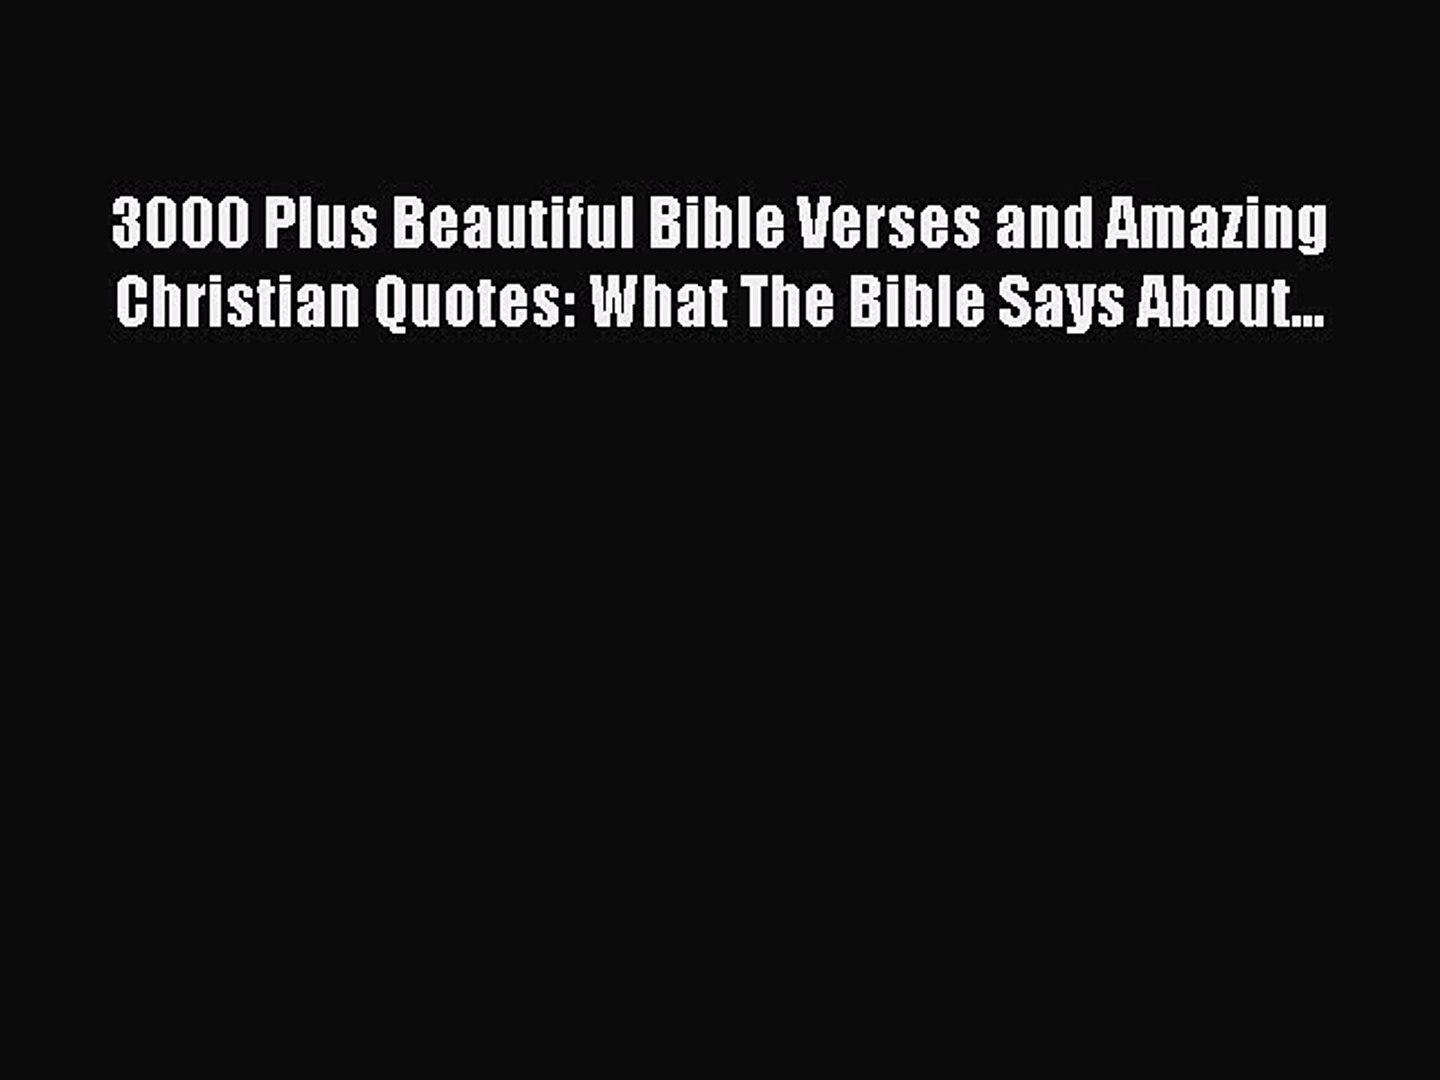 Download 3000 Plus Beautiful Bible Verses and Amazing Christian Quotes:  What The Bible Says